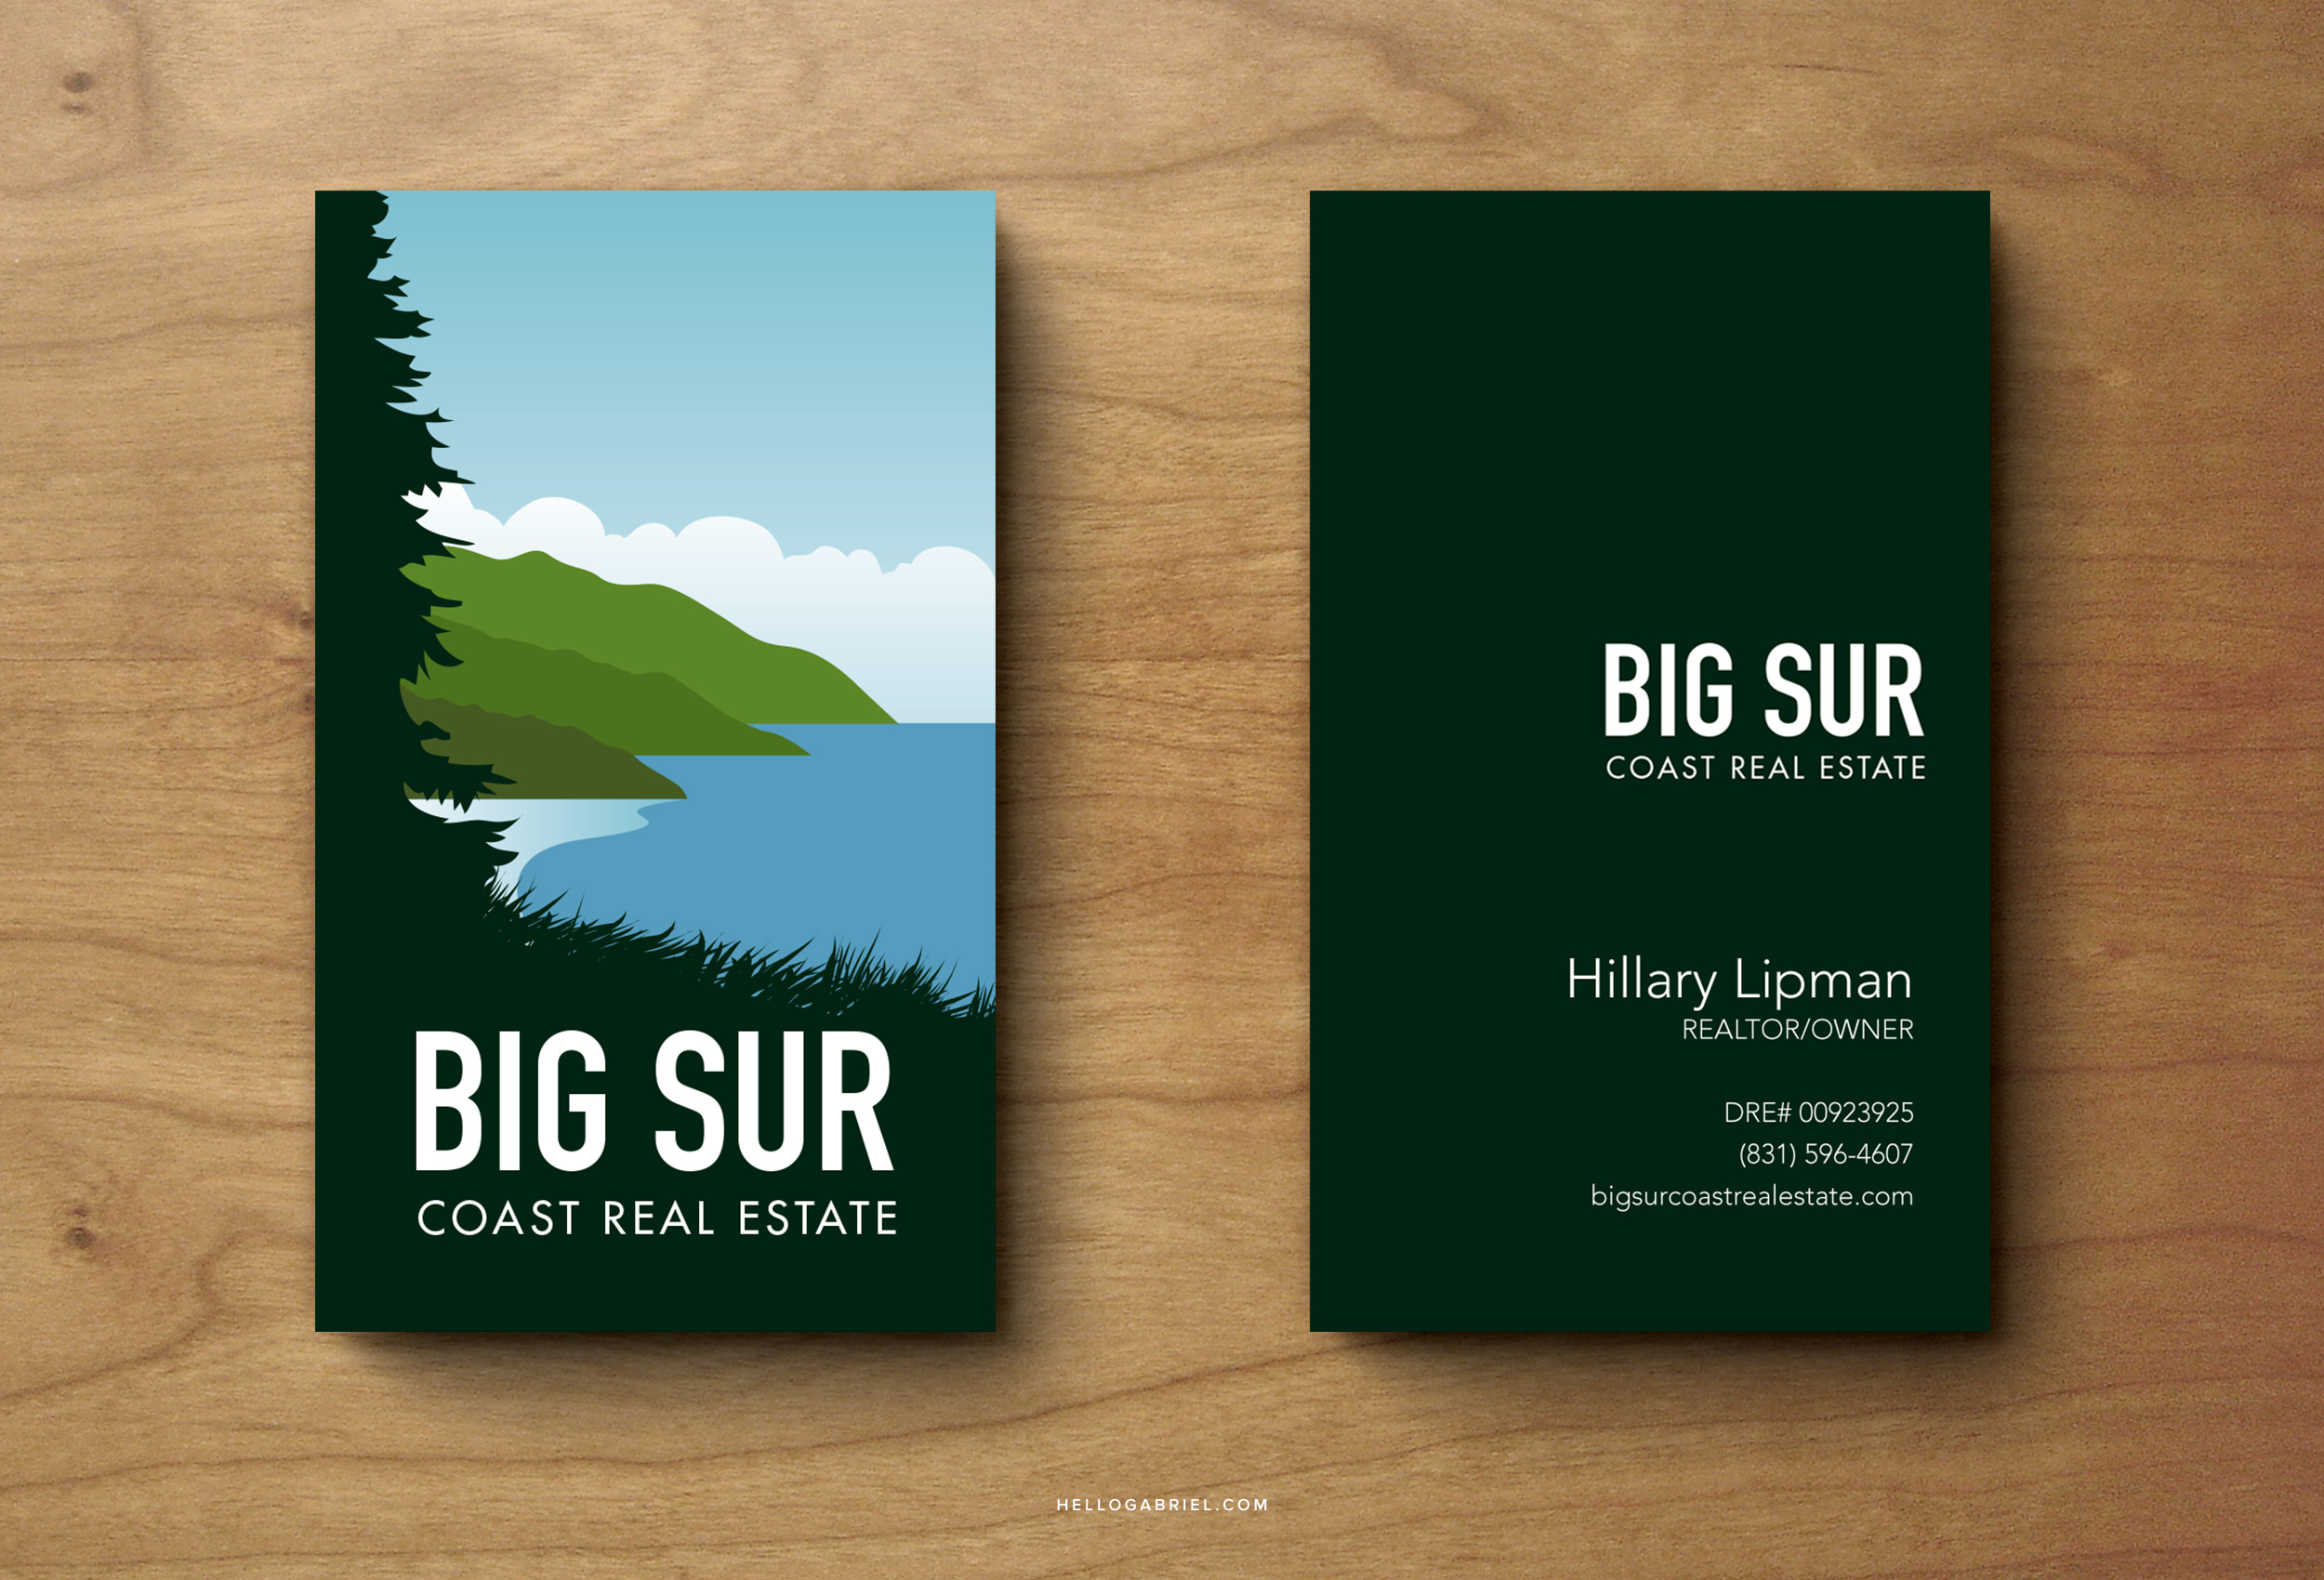 Big Sur Coast Real Estate Logo Design  |    VIEW FULL PROJECT